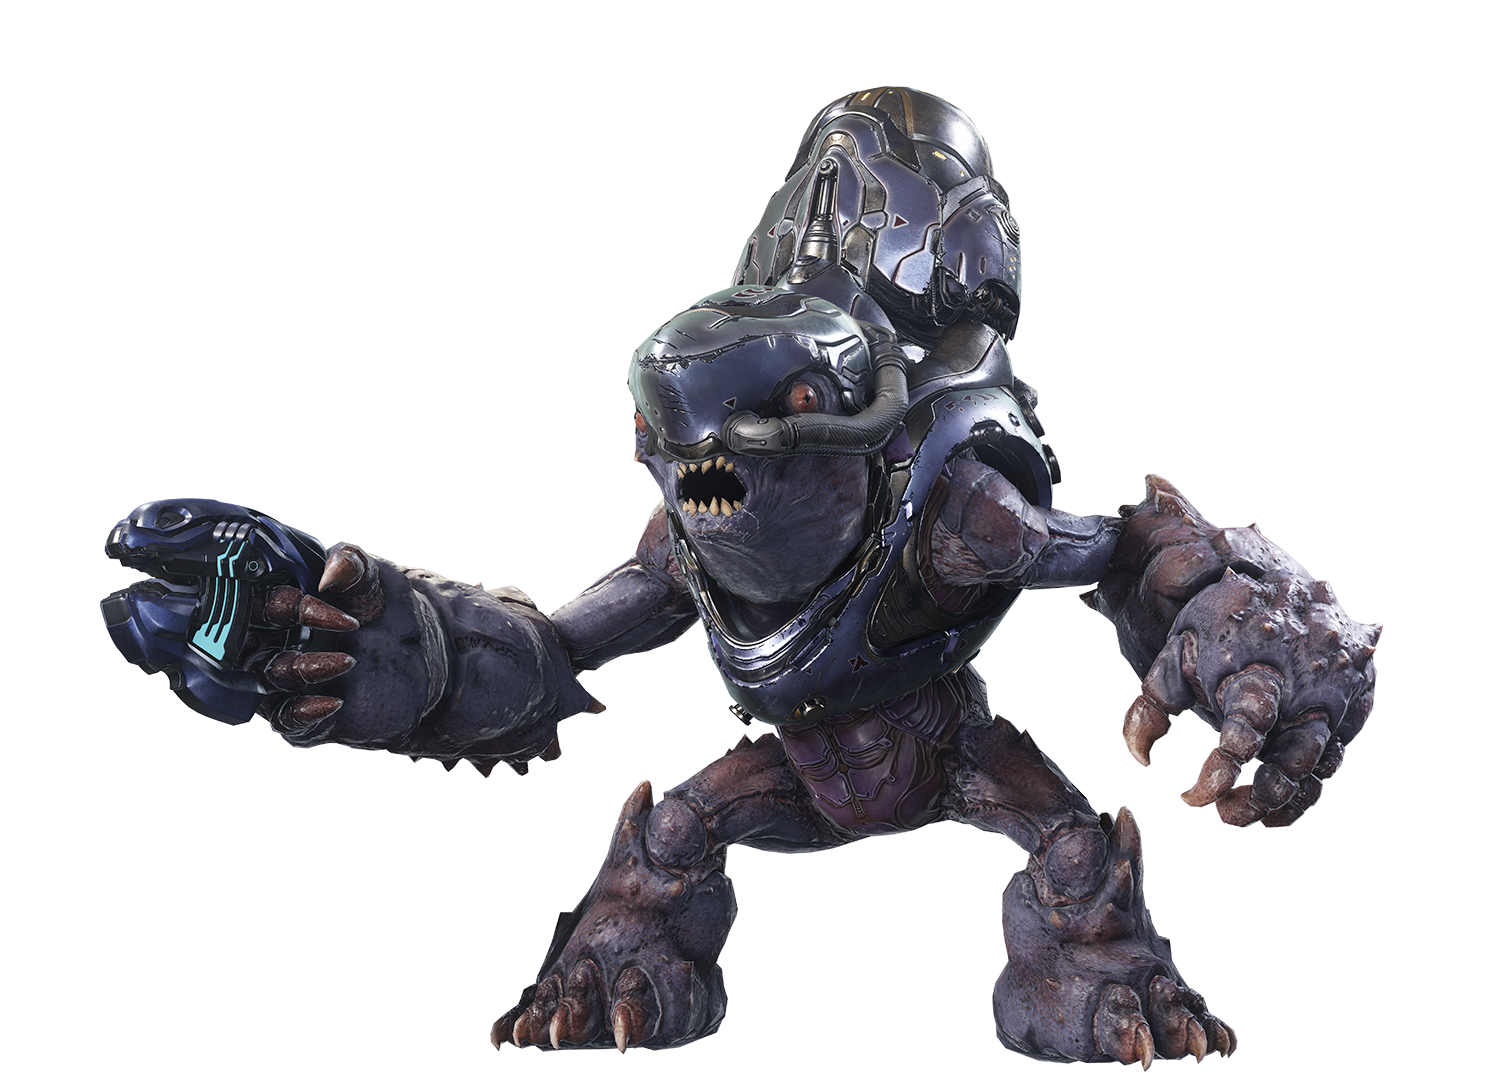 Arbiter halo 5 png. Official images character renders